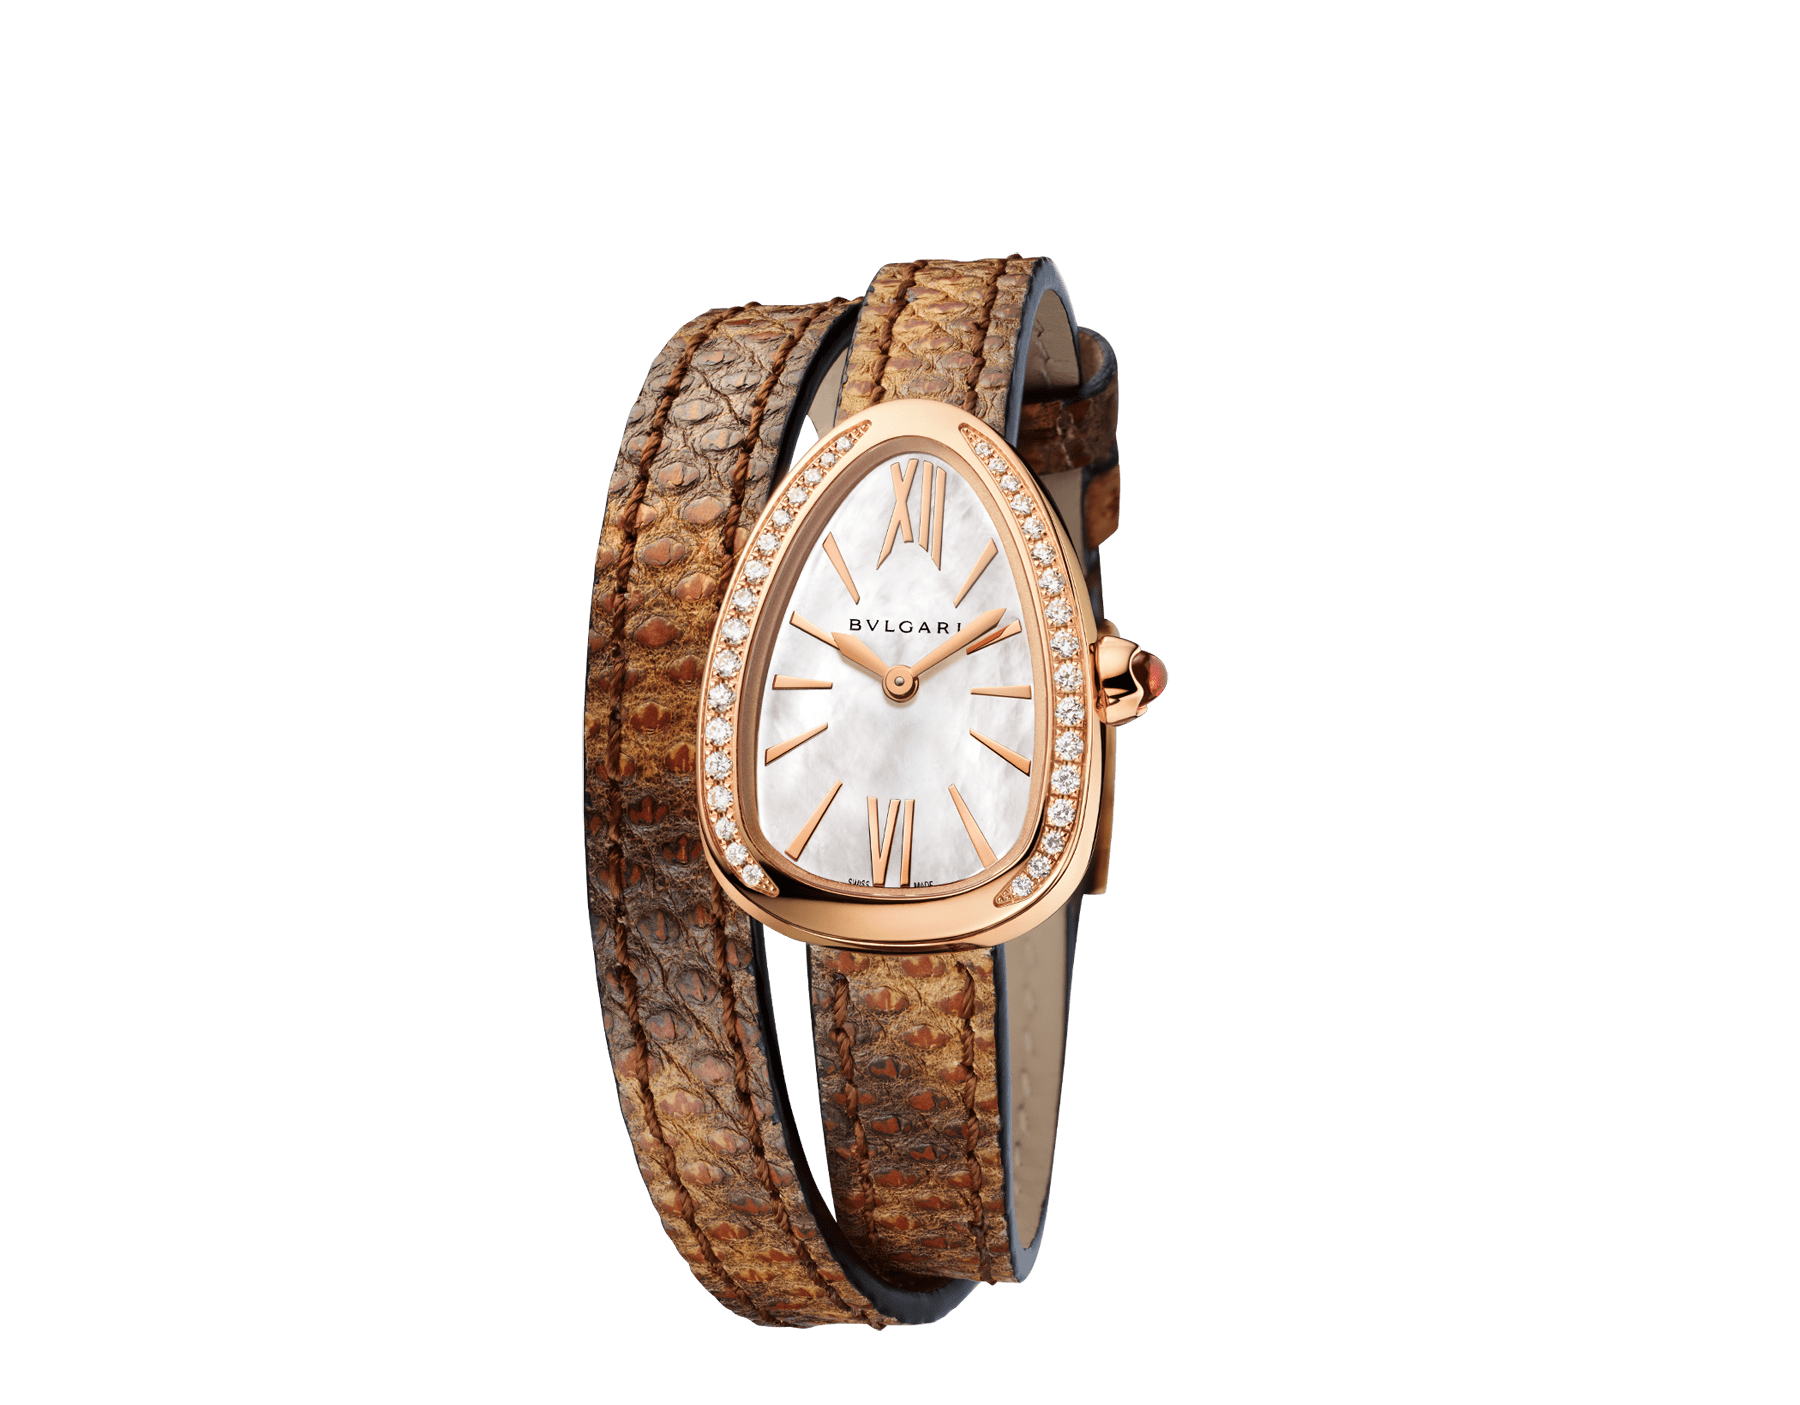 Serpenti watch with 18 kt rose gold case set with brilliant cut diamonds, white mother-of-pearl dial and interchangeable double spiral bracelet in brown karung leather. 102727 image 2